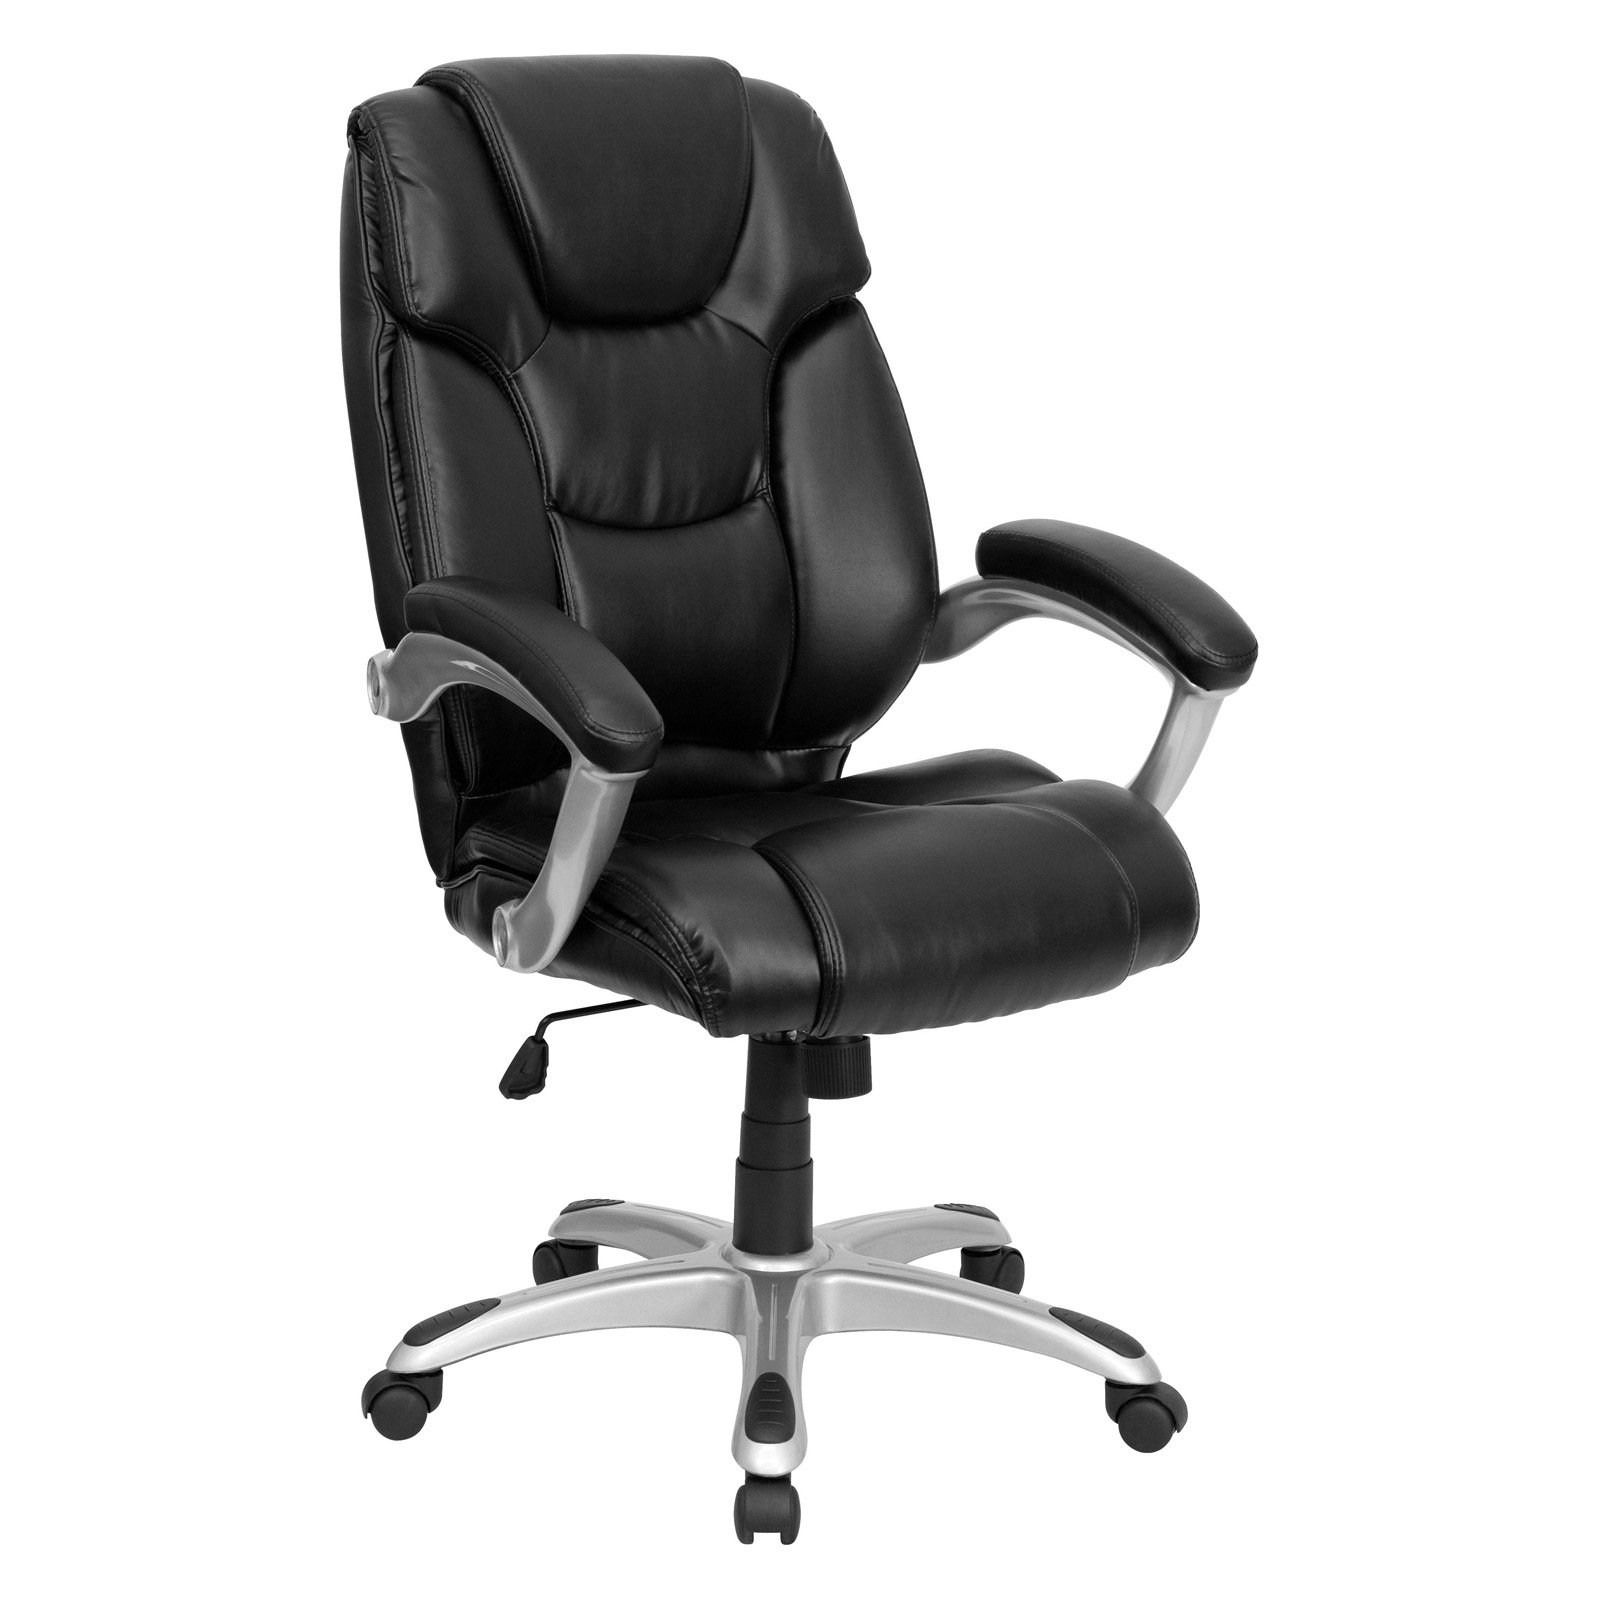 leather executive high back office chair with waterfall seat black